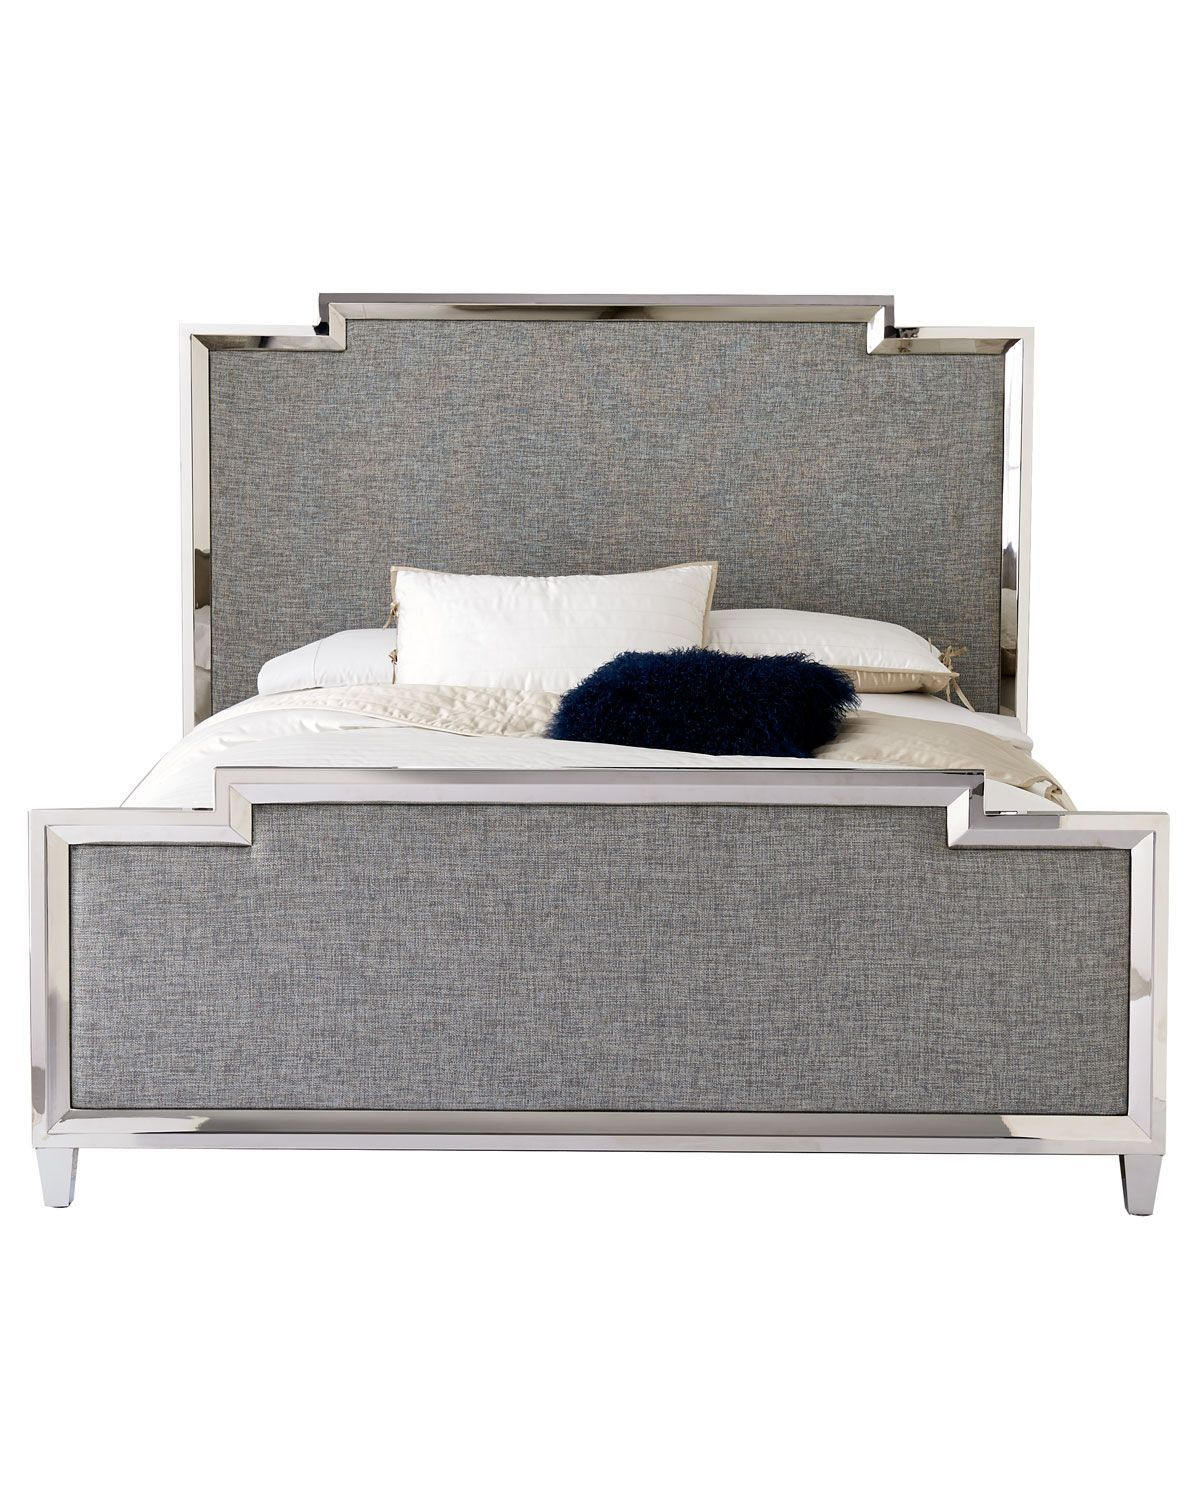 Broadway King Bed | Camas, Dormitorio y Me gustas